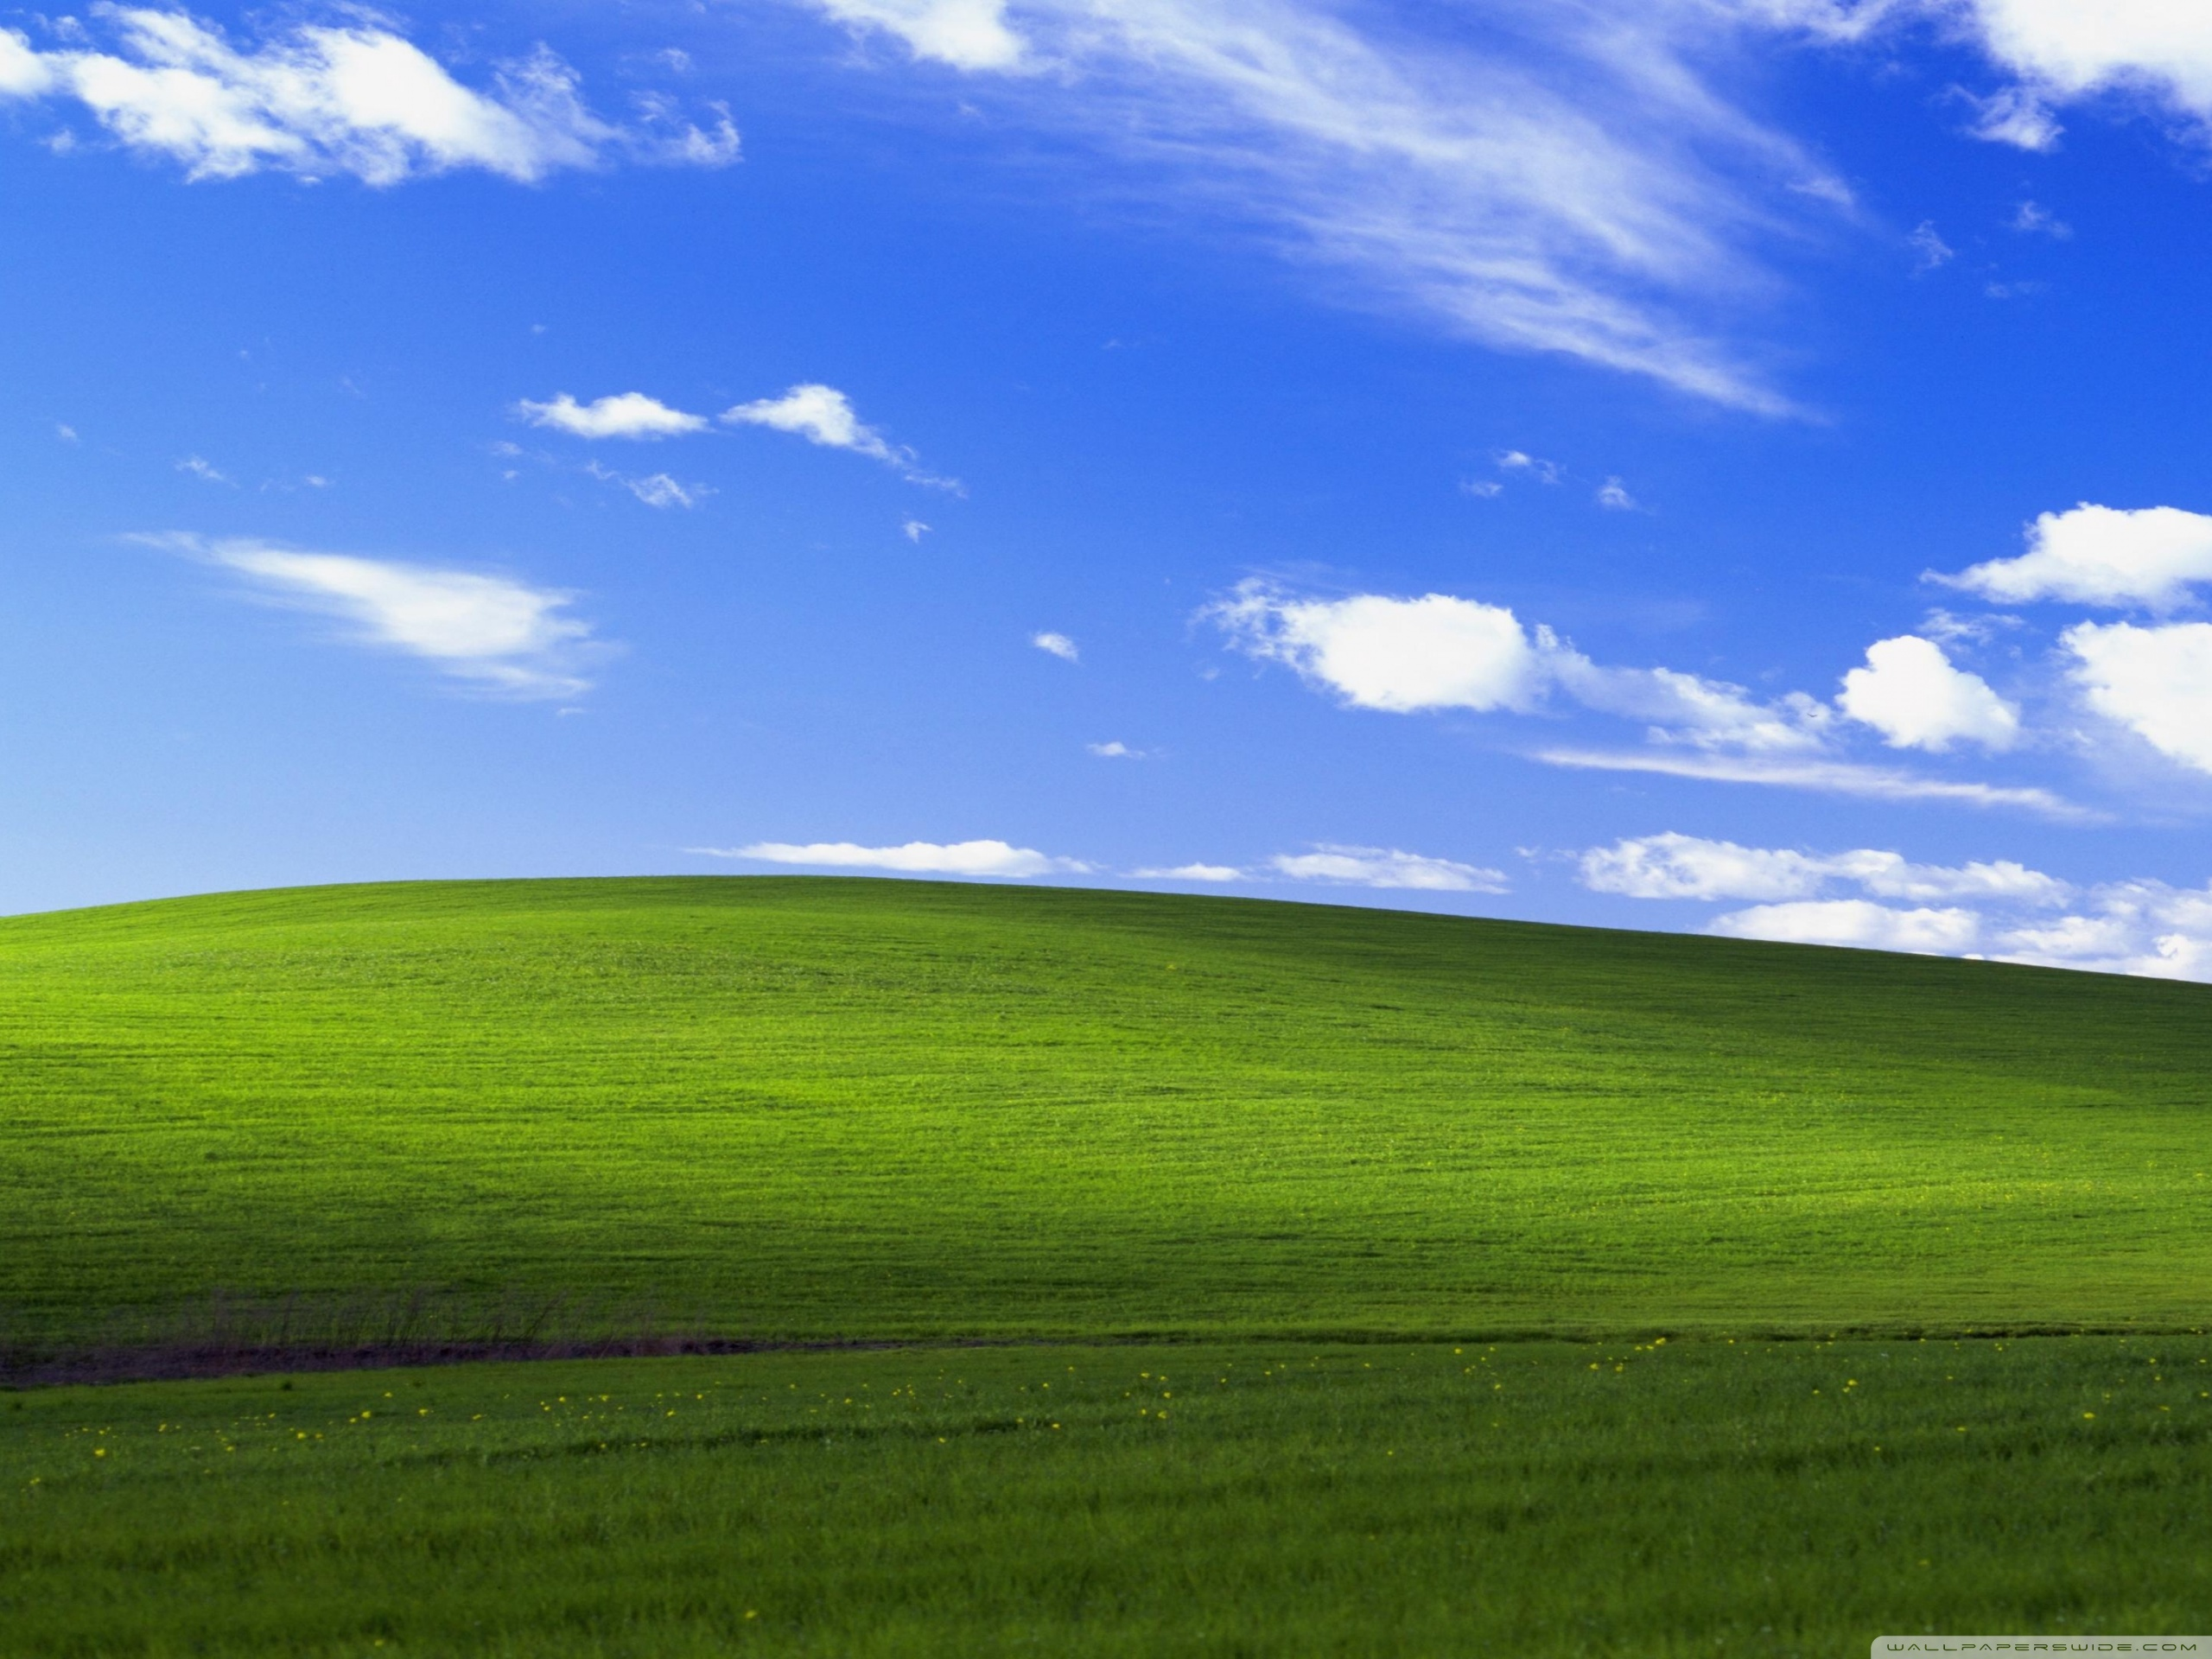 Windows XP Ultra HD Desktop Background Wallpaper for 4K UHD TV 2560x1920